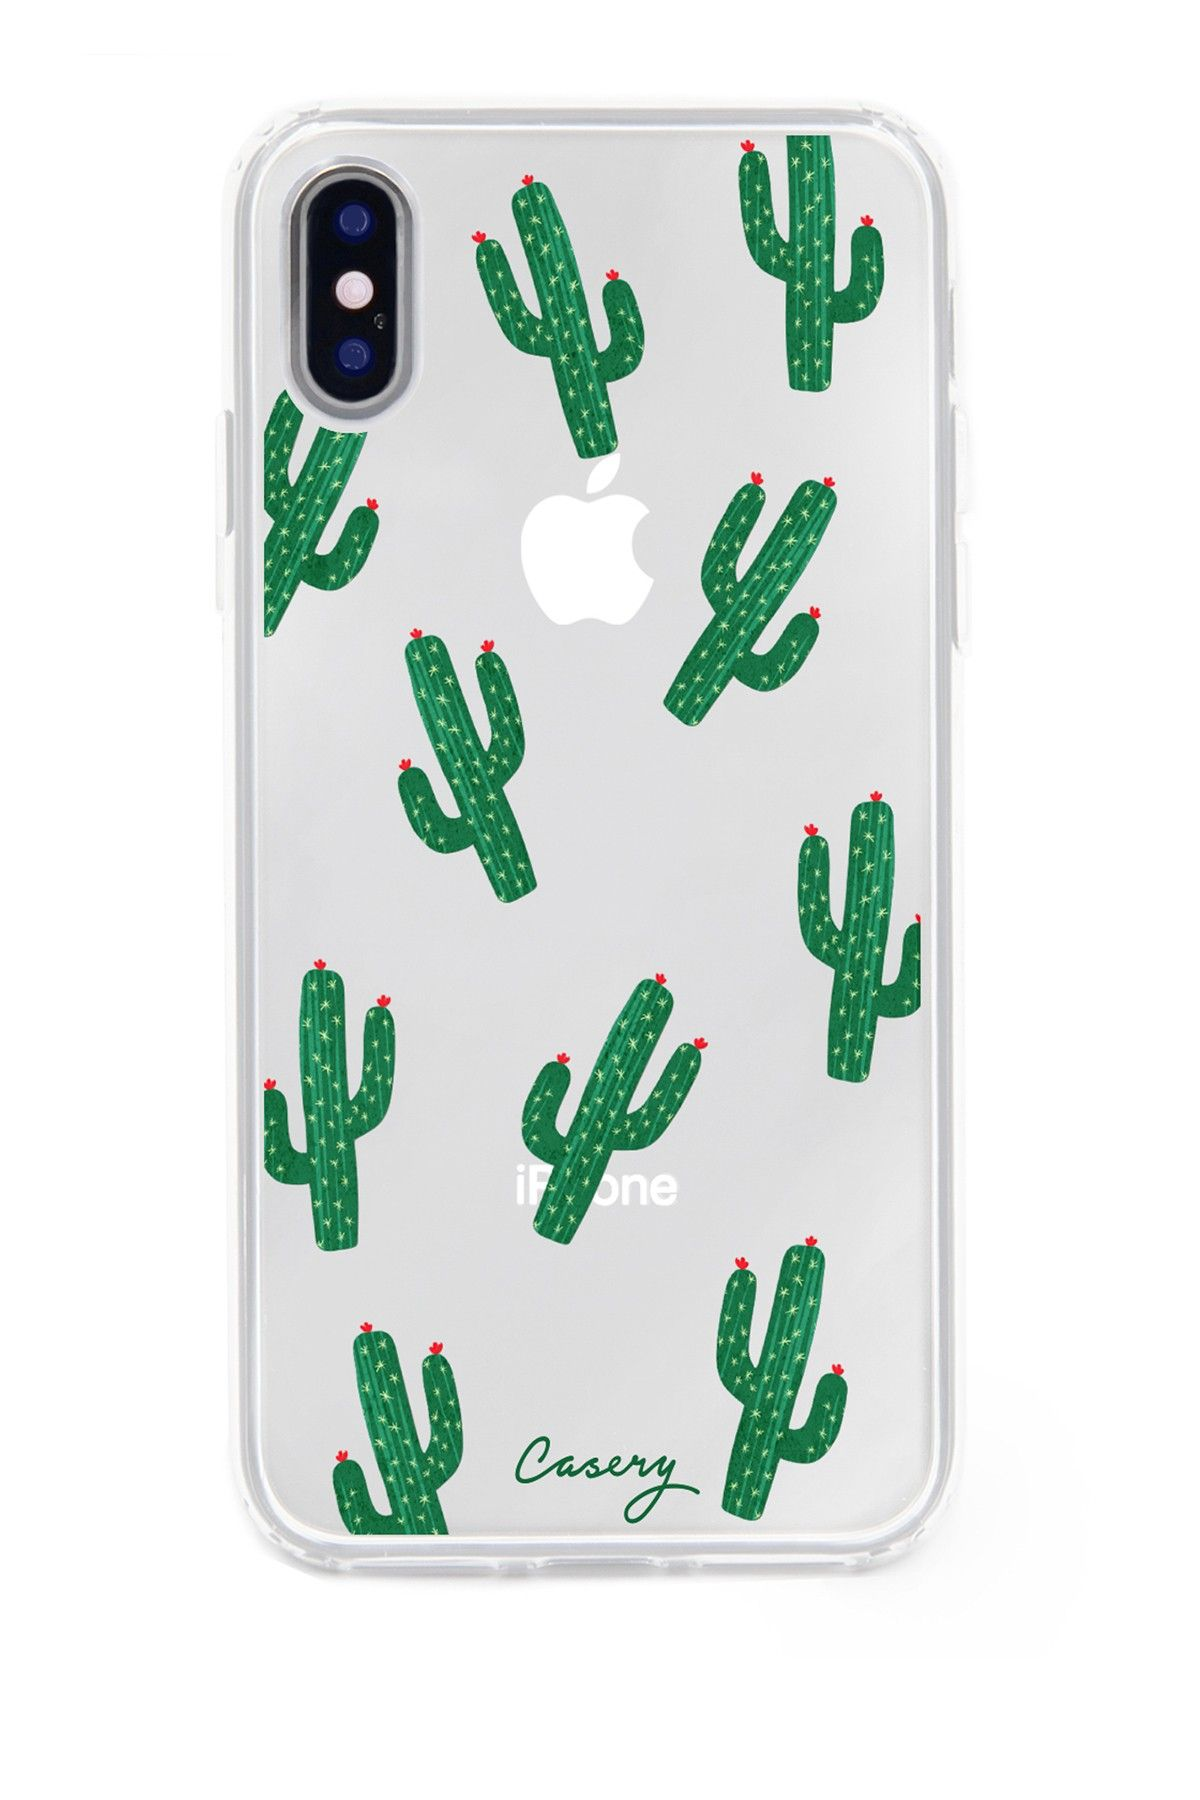 low priced a6d7d d56f7 The Casery Cactus iPhone X Case | Phones cases | Phone cases, Iphone ...